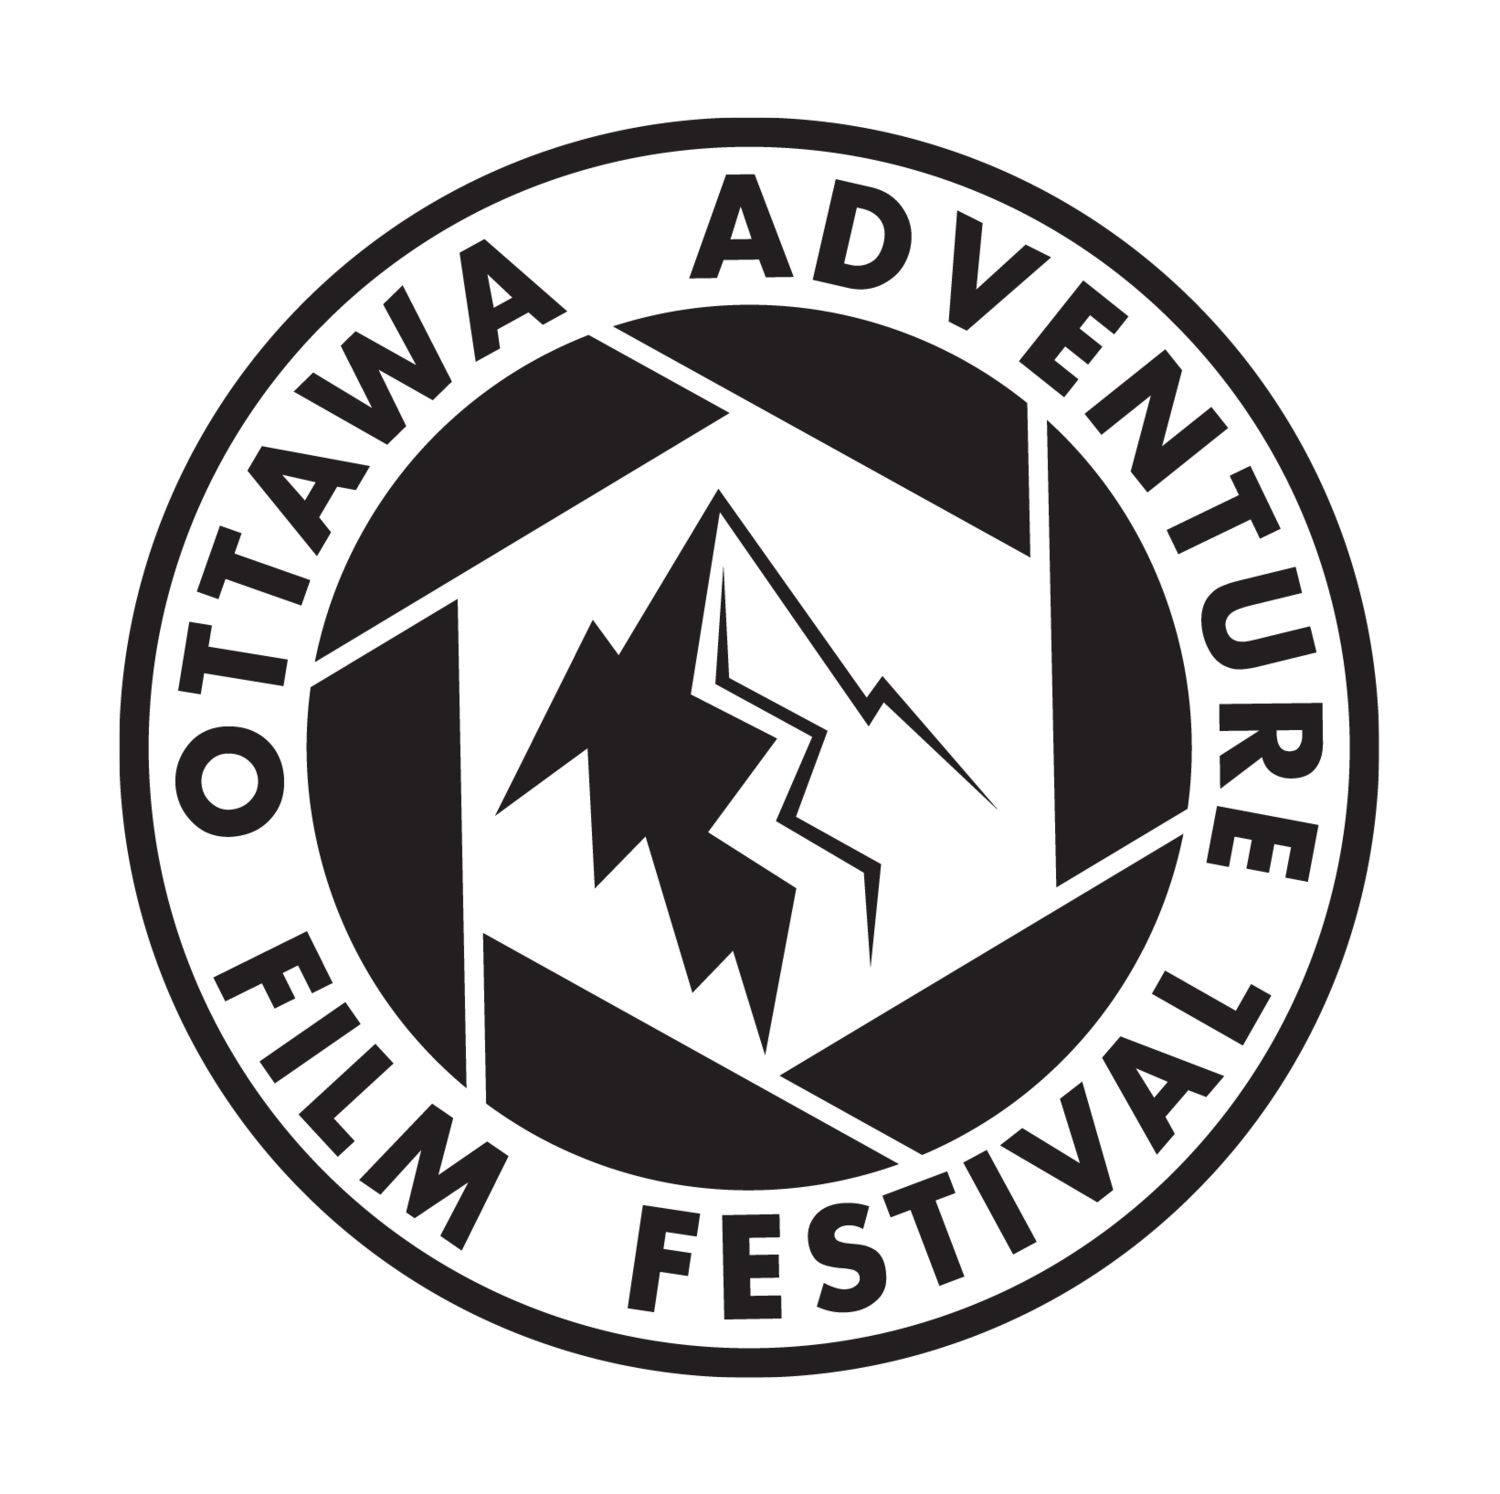 Ottawa Adventure Film Festival